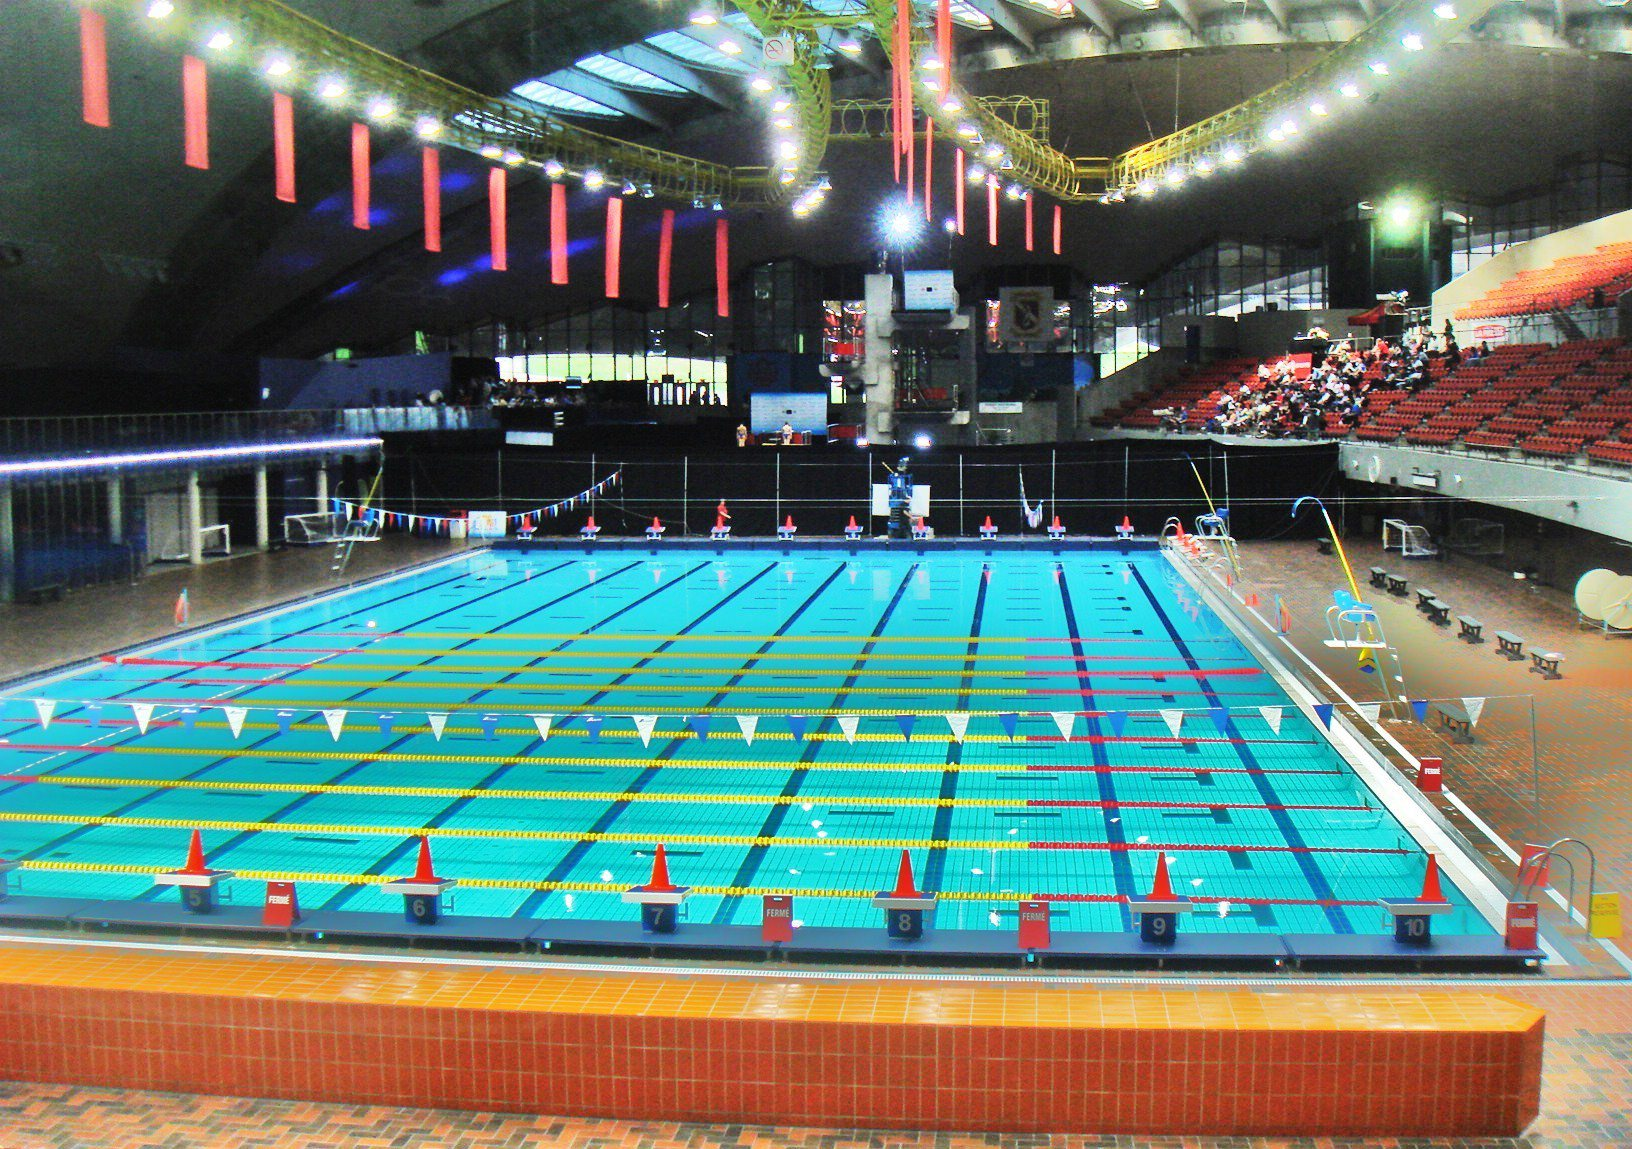 fileswimming pool in the olympic stade panoramiojpg